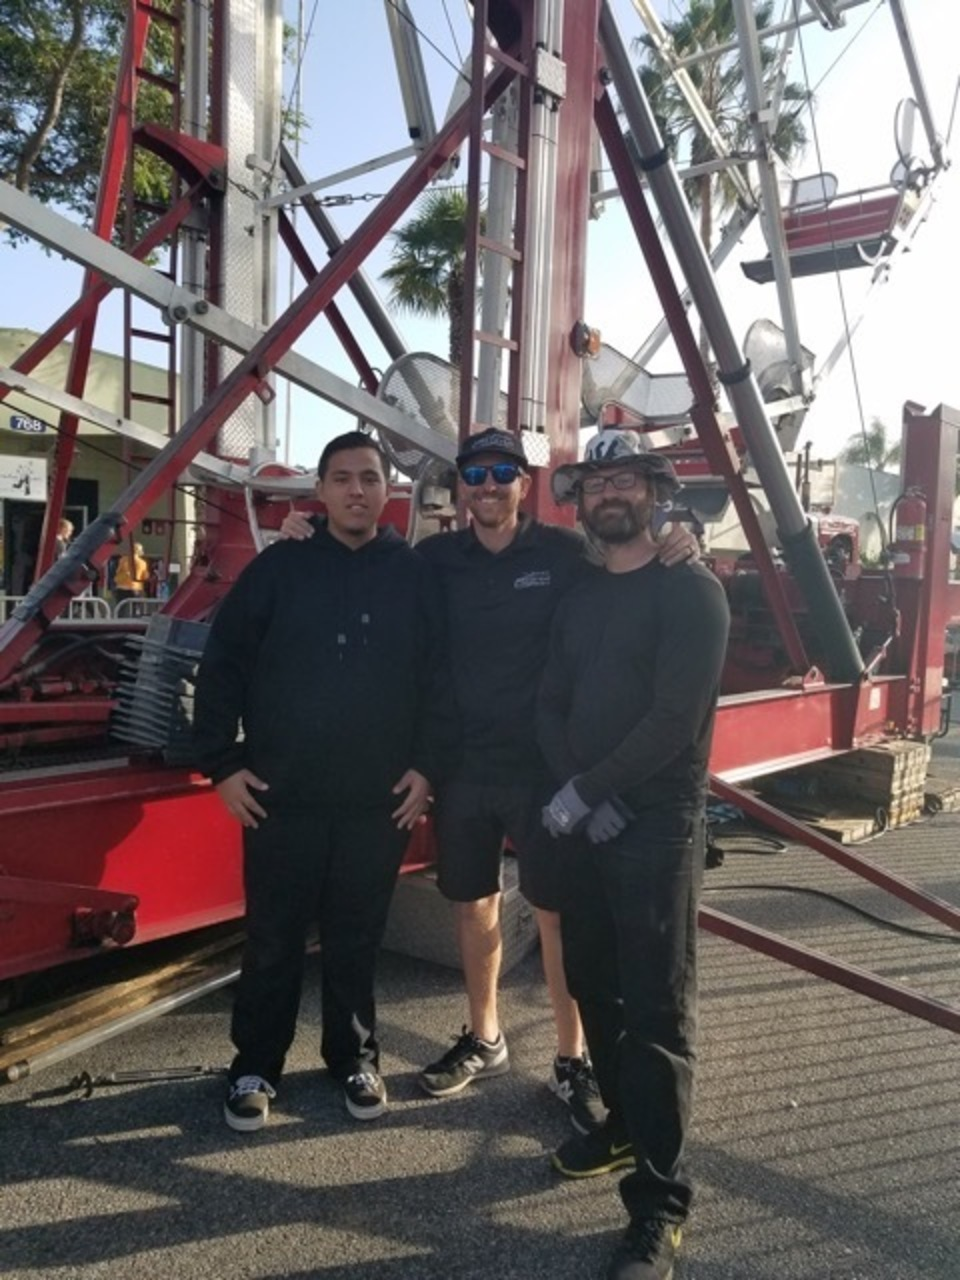 James Events Ferris Wheel heros!